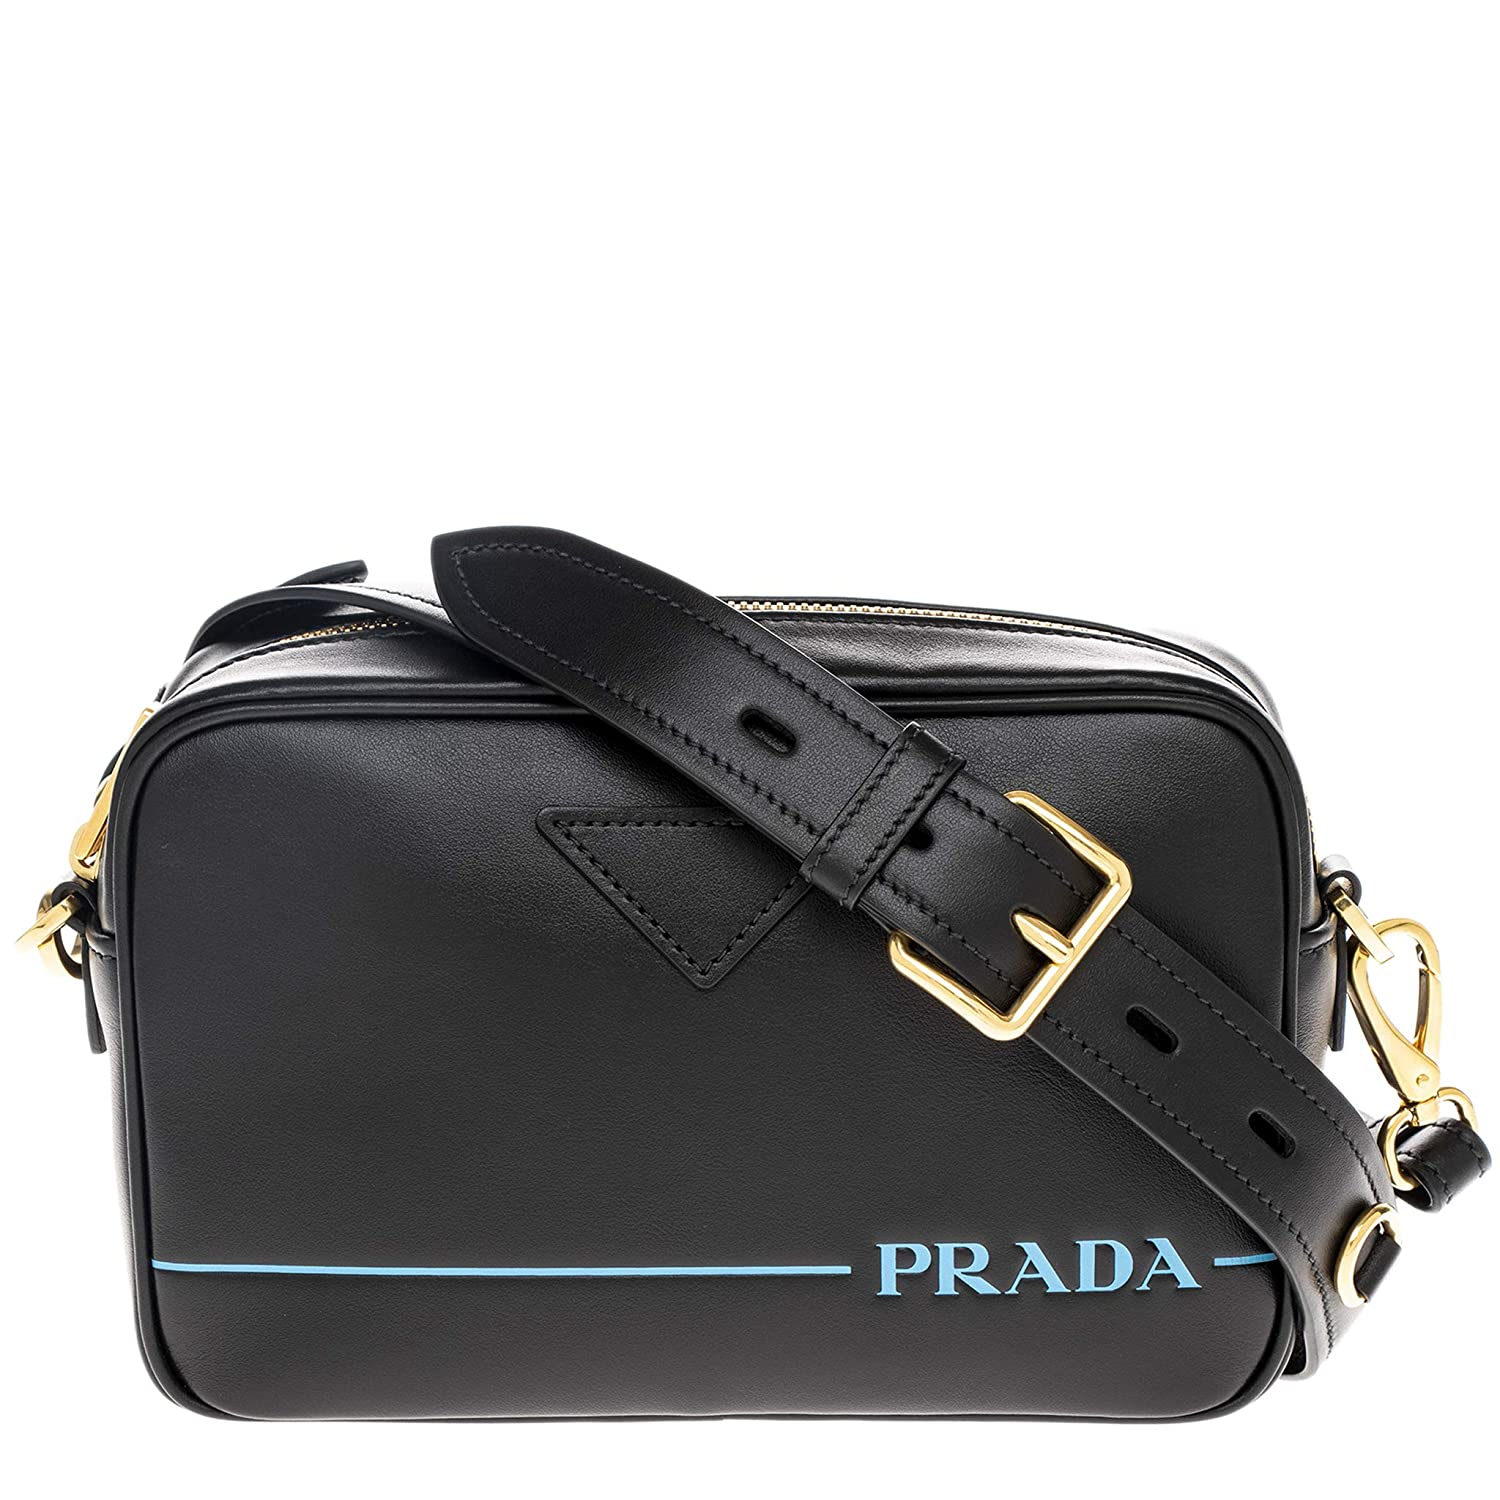 5b4021a7c270 Amazon.com  Prada Black Calf Leather Camera Bag with Embossed Light Blue  Accents  TheLuxuryClub